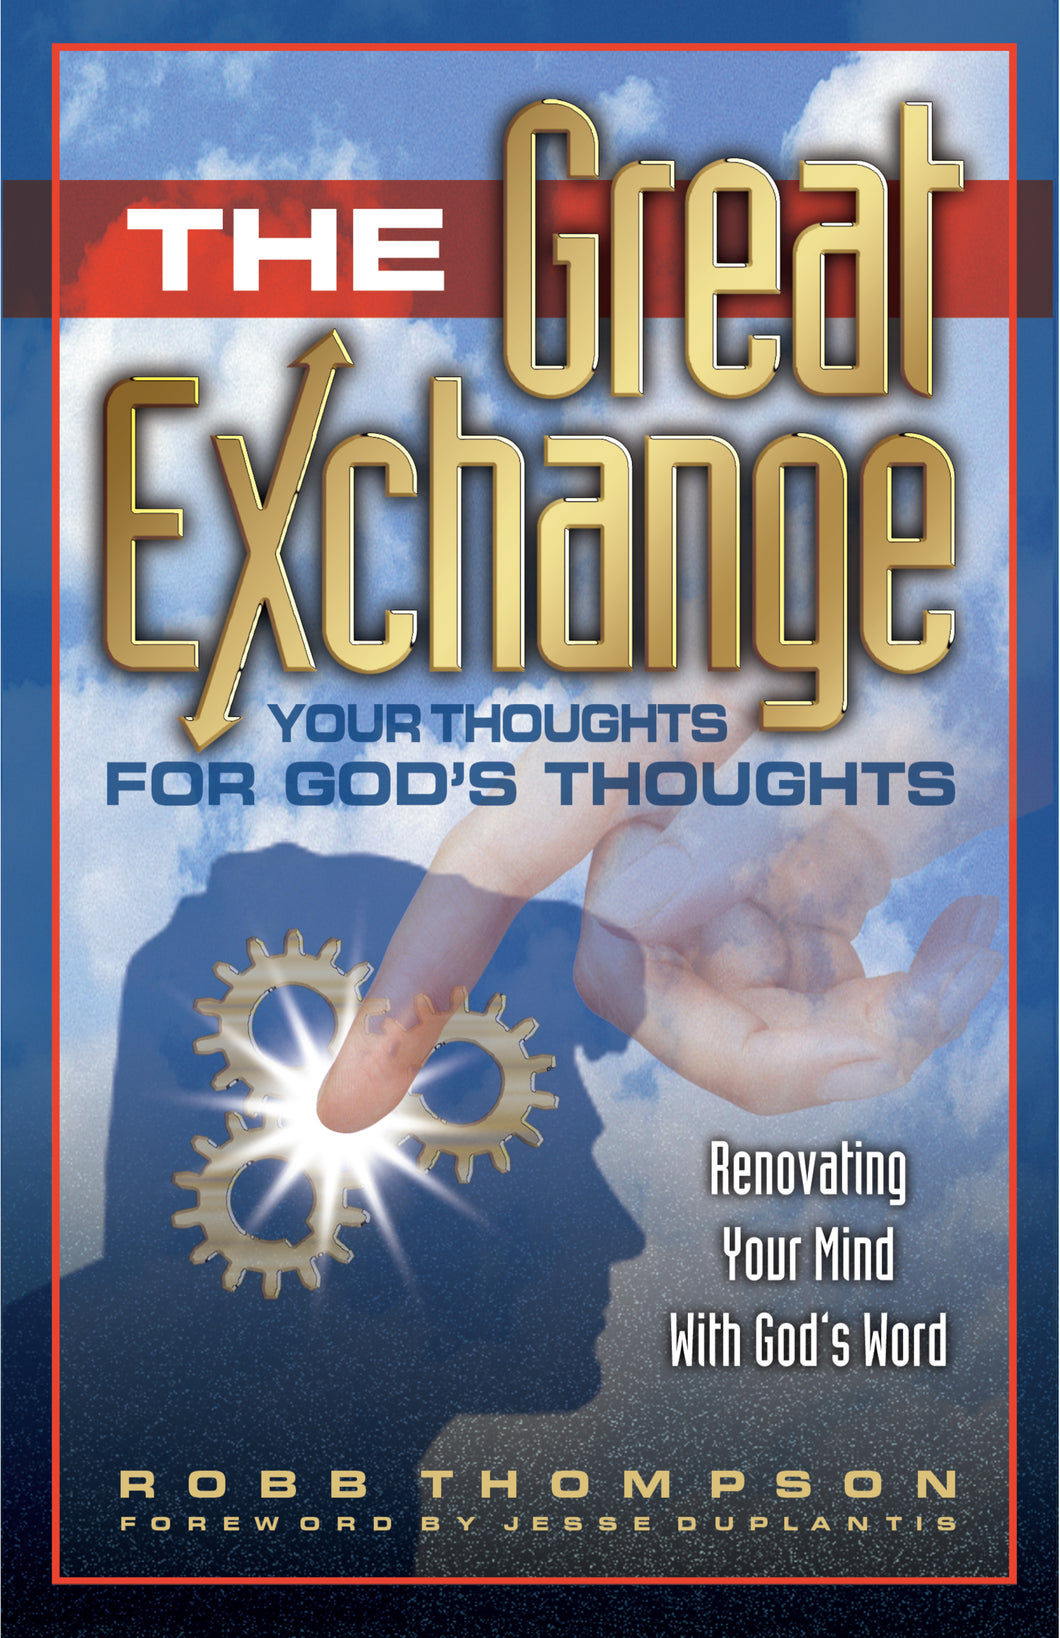 The Great Exchange: Your Thoughts for God's Thoughts Renovating Your Mind With God's Word